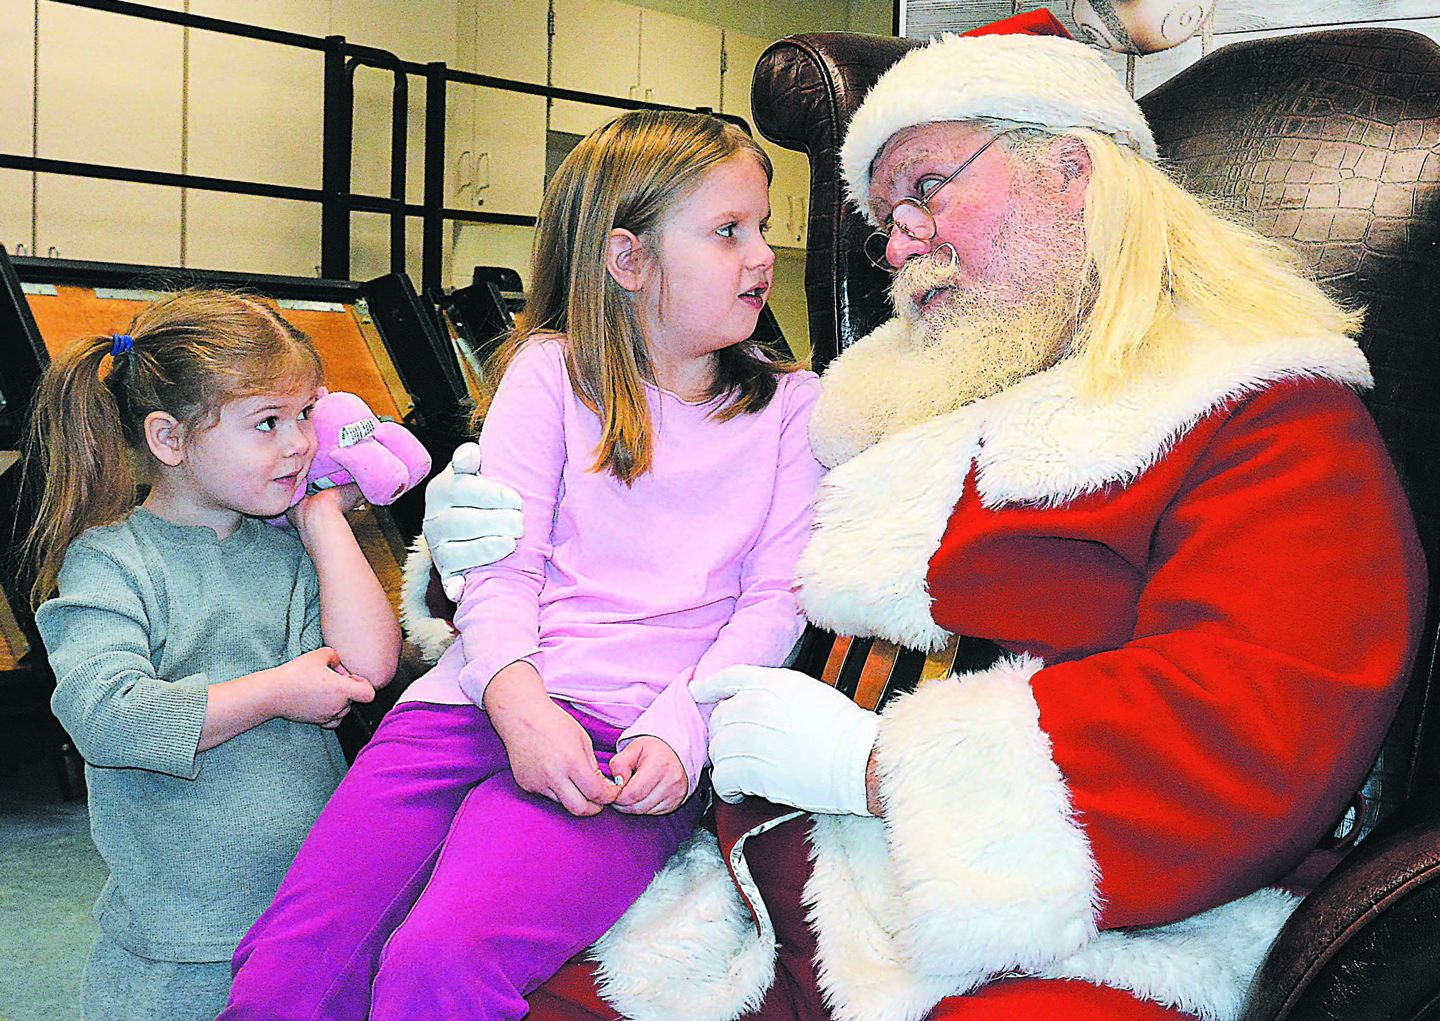 Visiting with the one and only Santa Claus are sisters Lena Starzyk (left), 3, and Sophia, 6. Sophia is a first-grader at Lakeville Elementary School. Photo by C.J. Carnacchio.